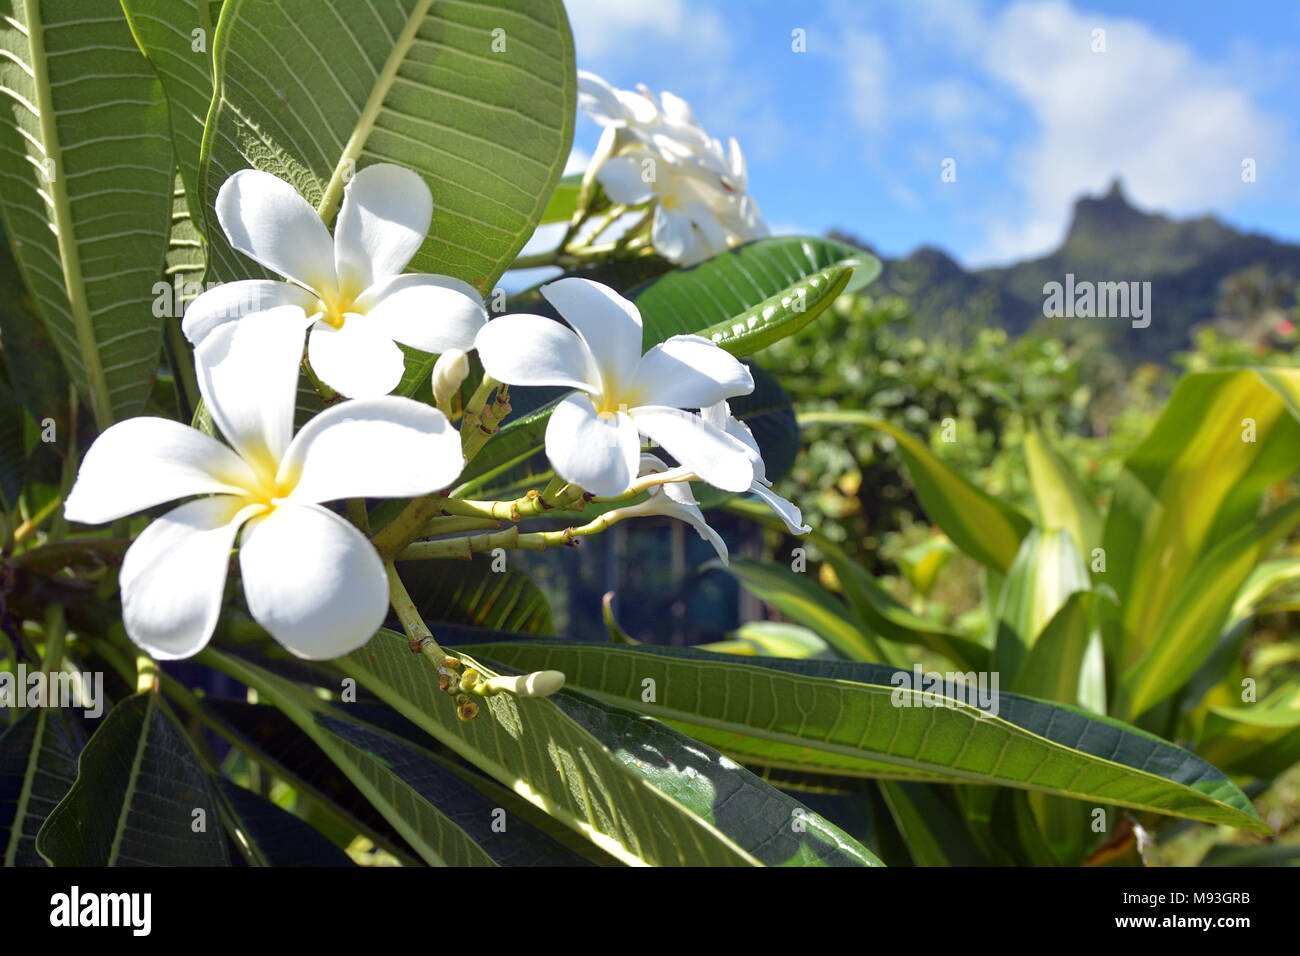 Plumeria flowers grows in Rarotonga, Cook Islands. In several Pacific islands, such as Tahiti, Fiji, Samoa, Hawaii, New Zealand, Tonga, and the Cook I - Stock Image